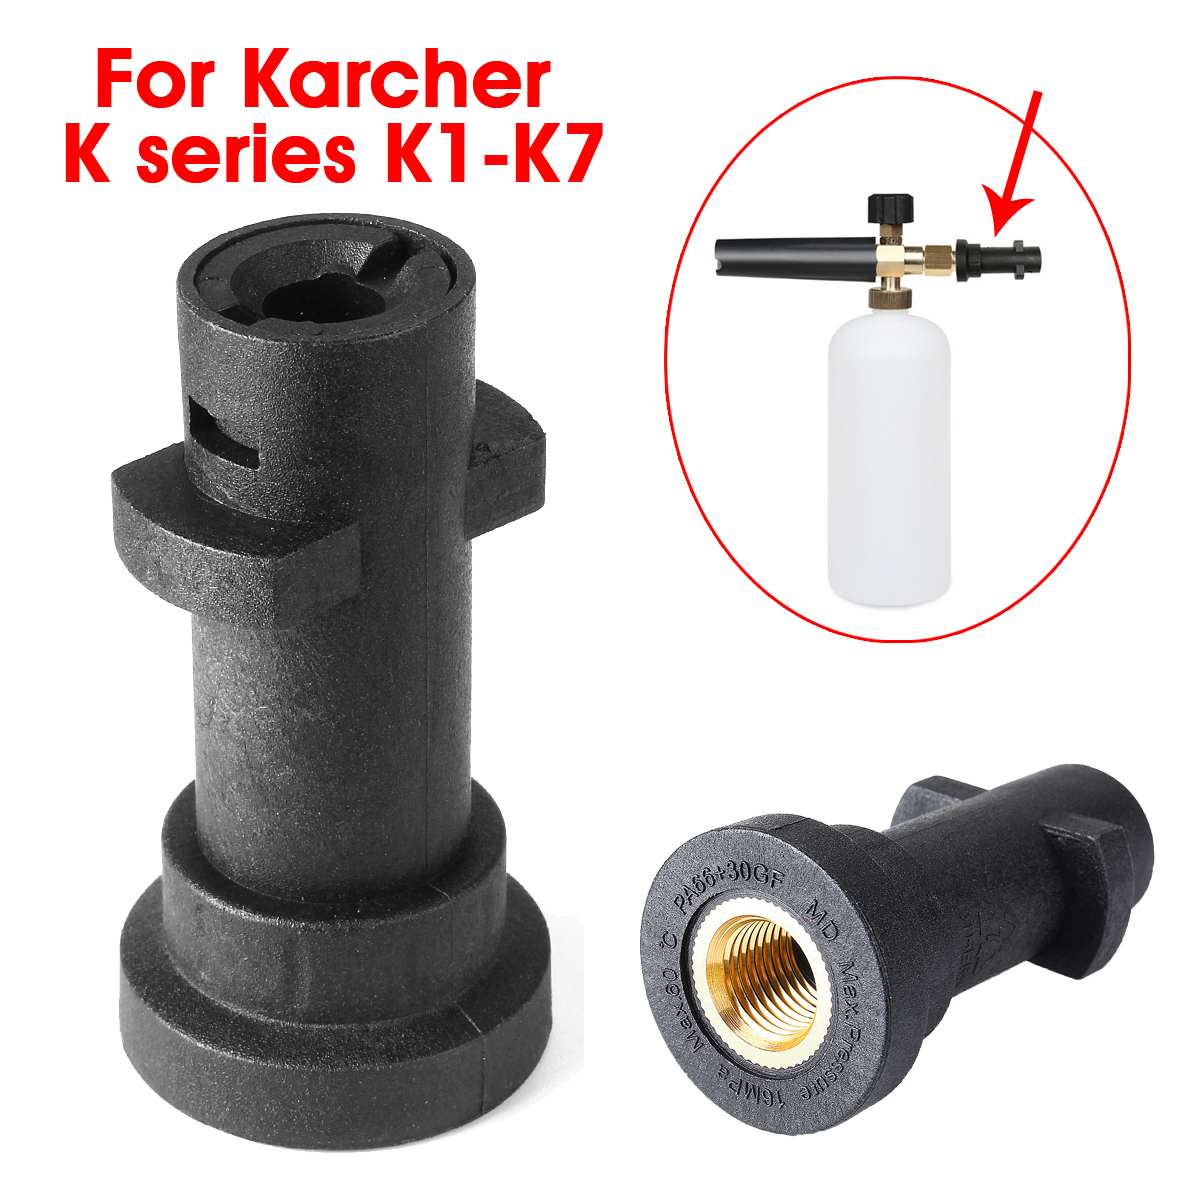 Black High Pressure Water Filter Bubble Pot Car Washer Connector Adapter Plastic Washing Accessories For Karcher K series K1-K7(China)